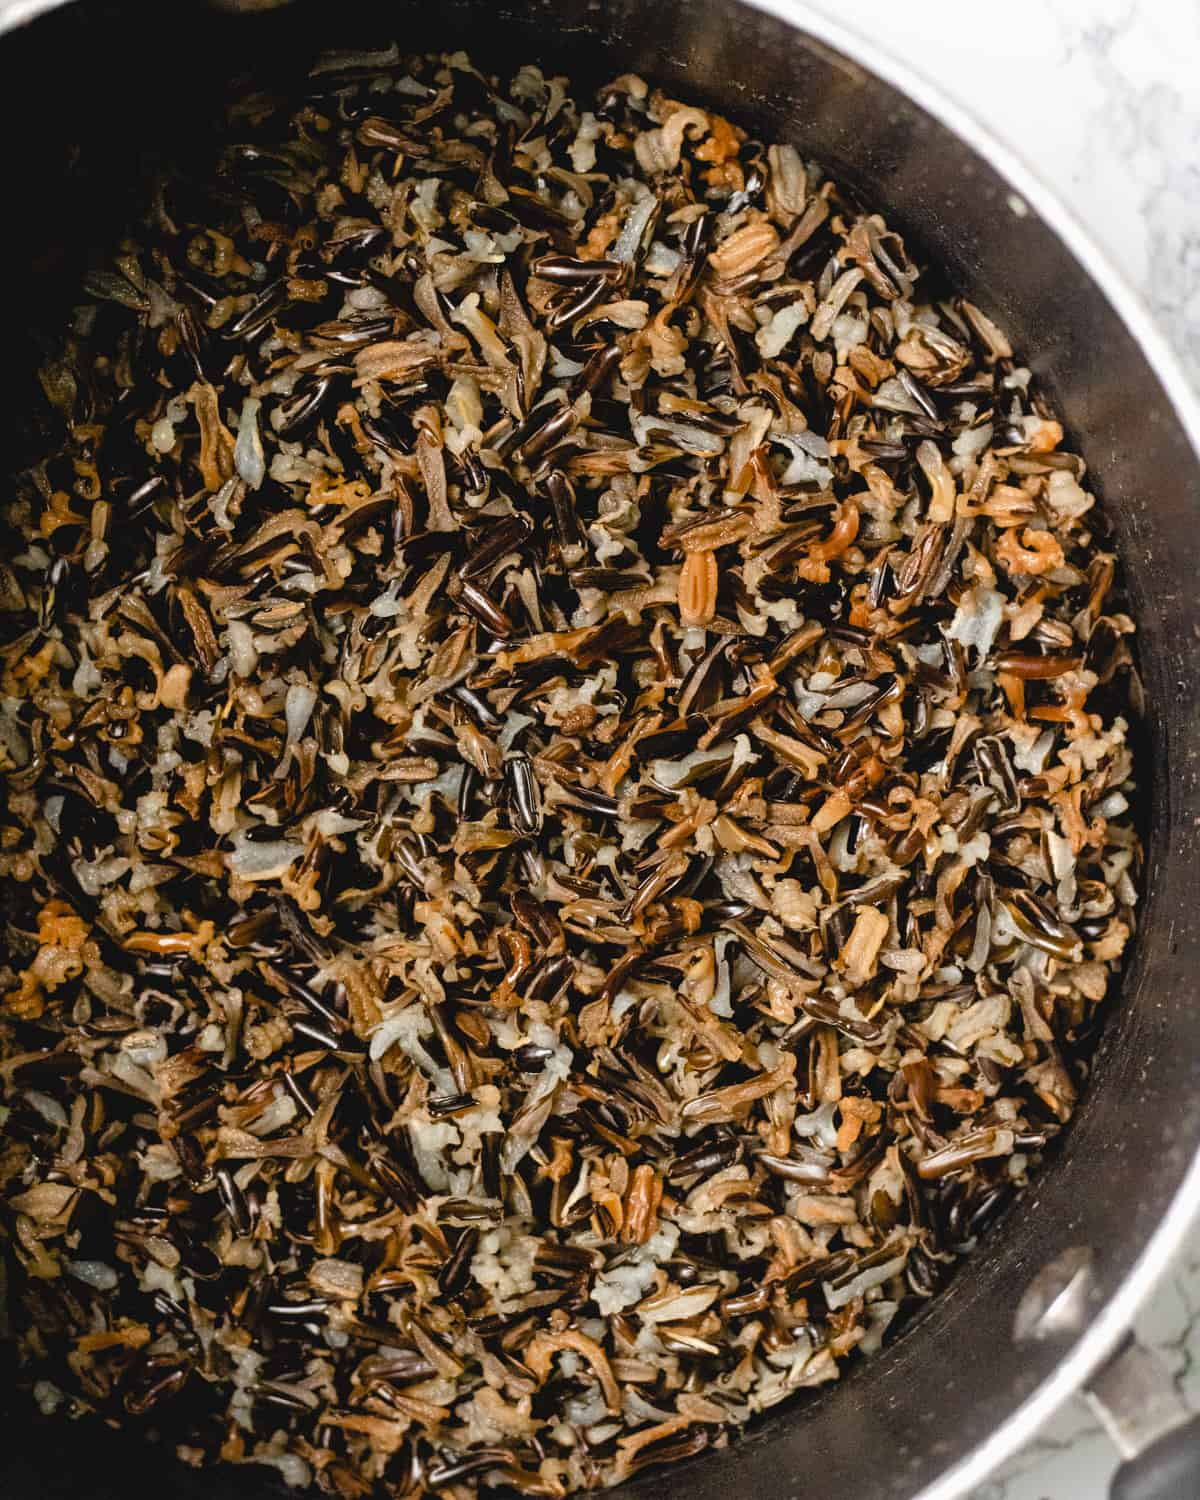 Pot of wild rice, ready to add water and boil.